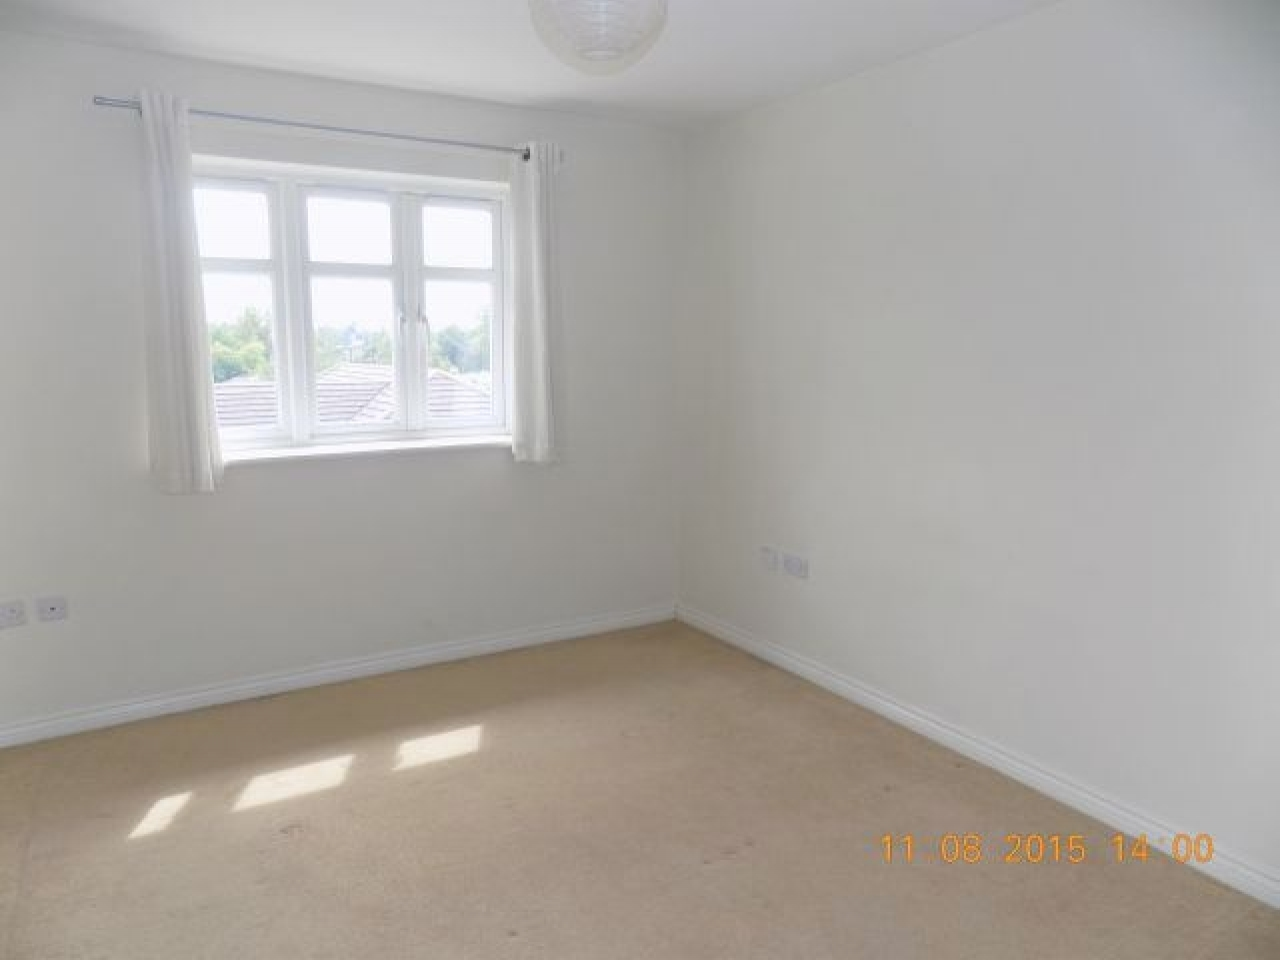 2 Bedroom Apartment Flat/apartment For Sale - Master Bedroom